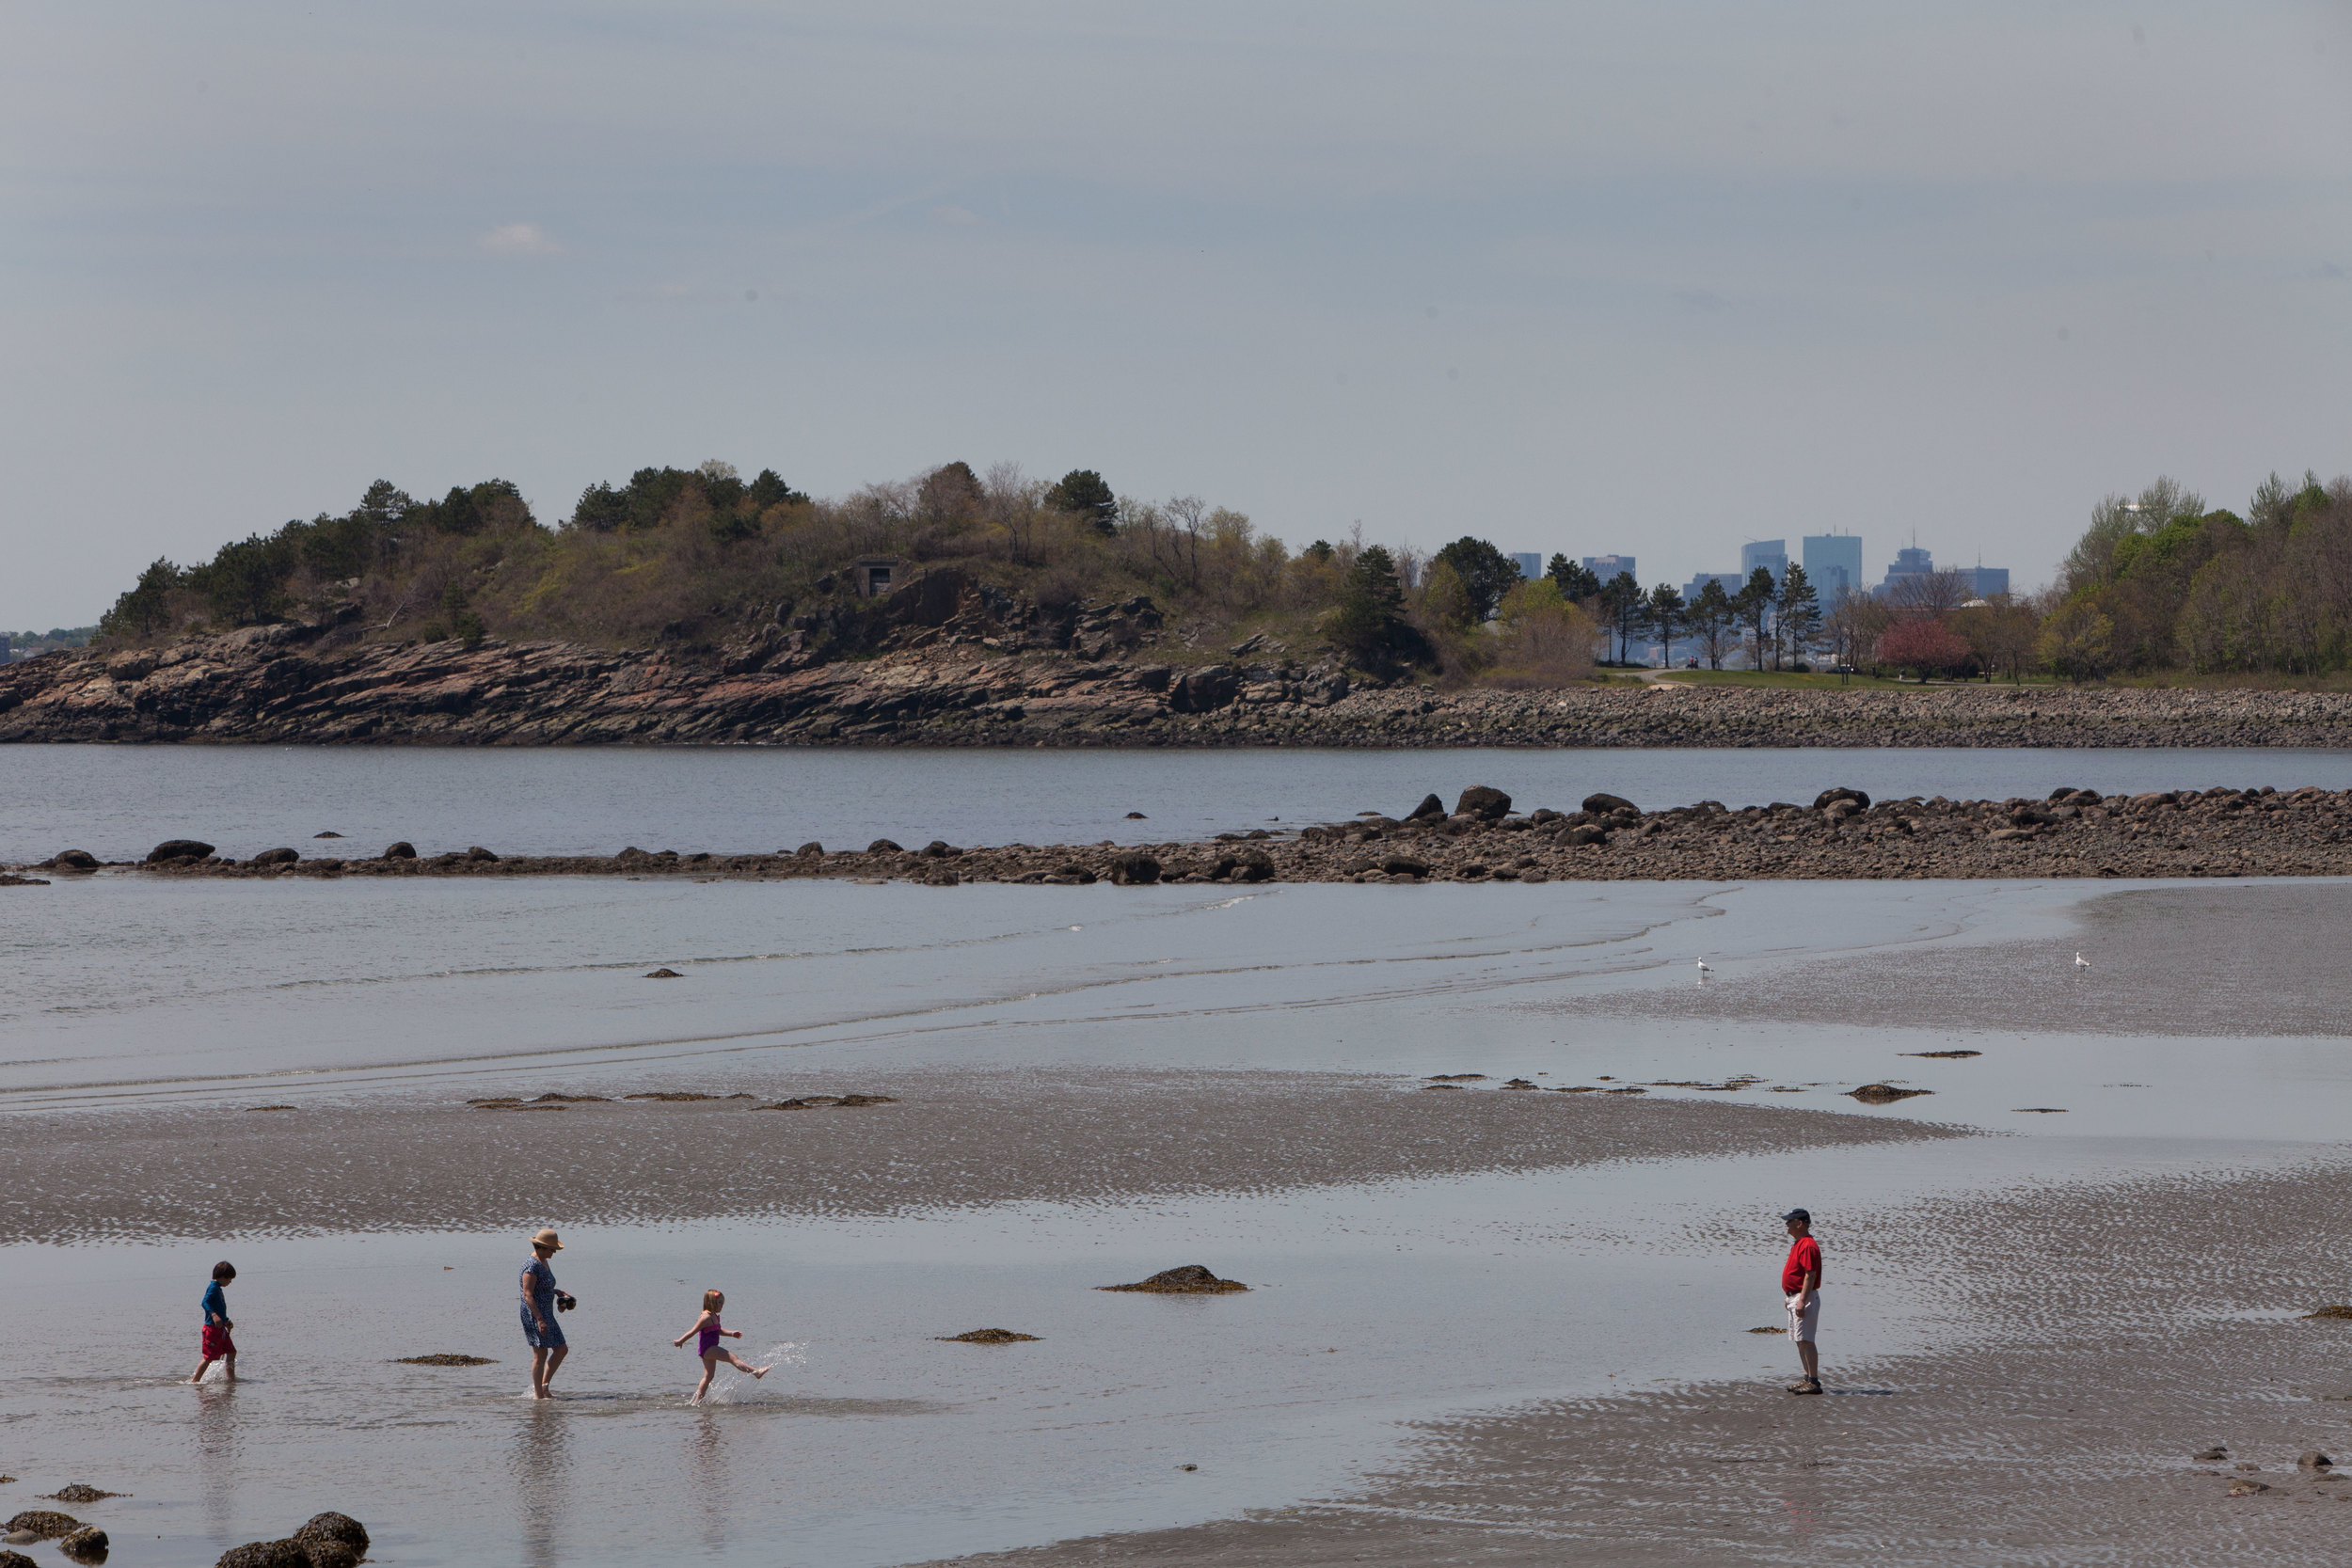 Compared to other communities on the Massachusetts coast Nahant does not have the worst flooding - that distinction goes to the town of Scituate.